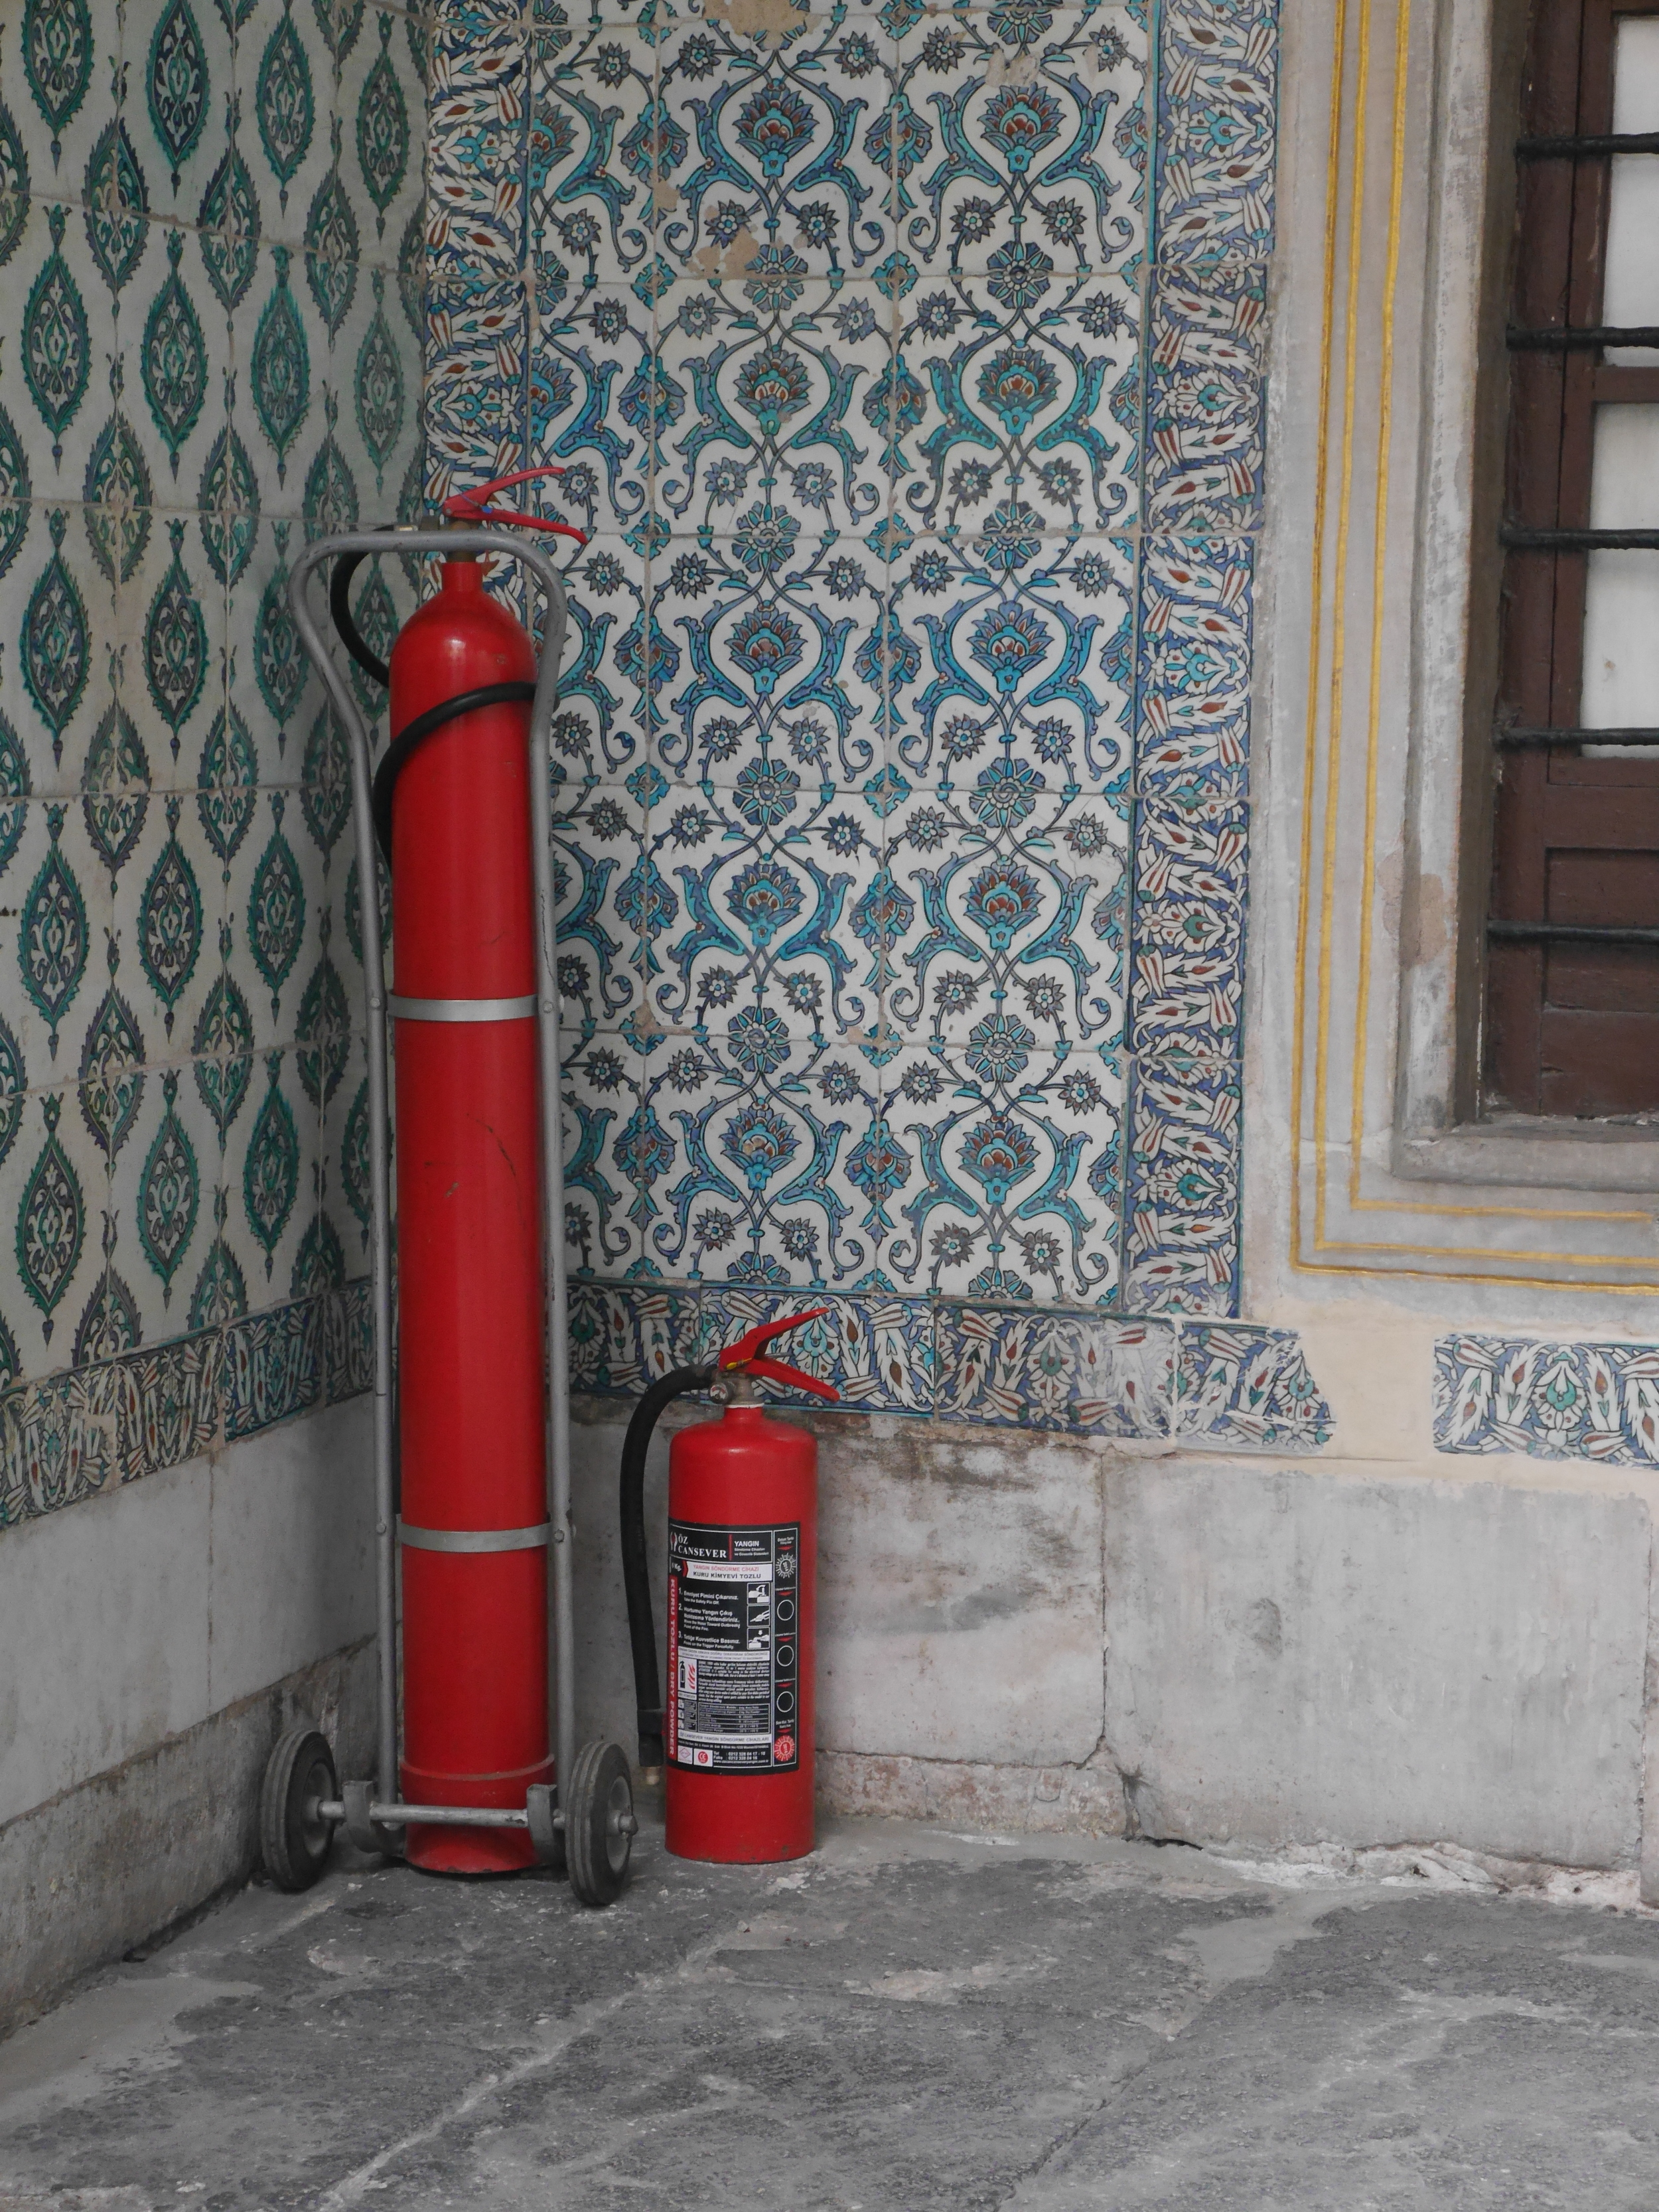 The tallest fire extinguisher I've ever seen.